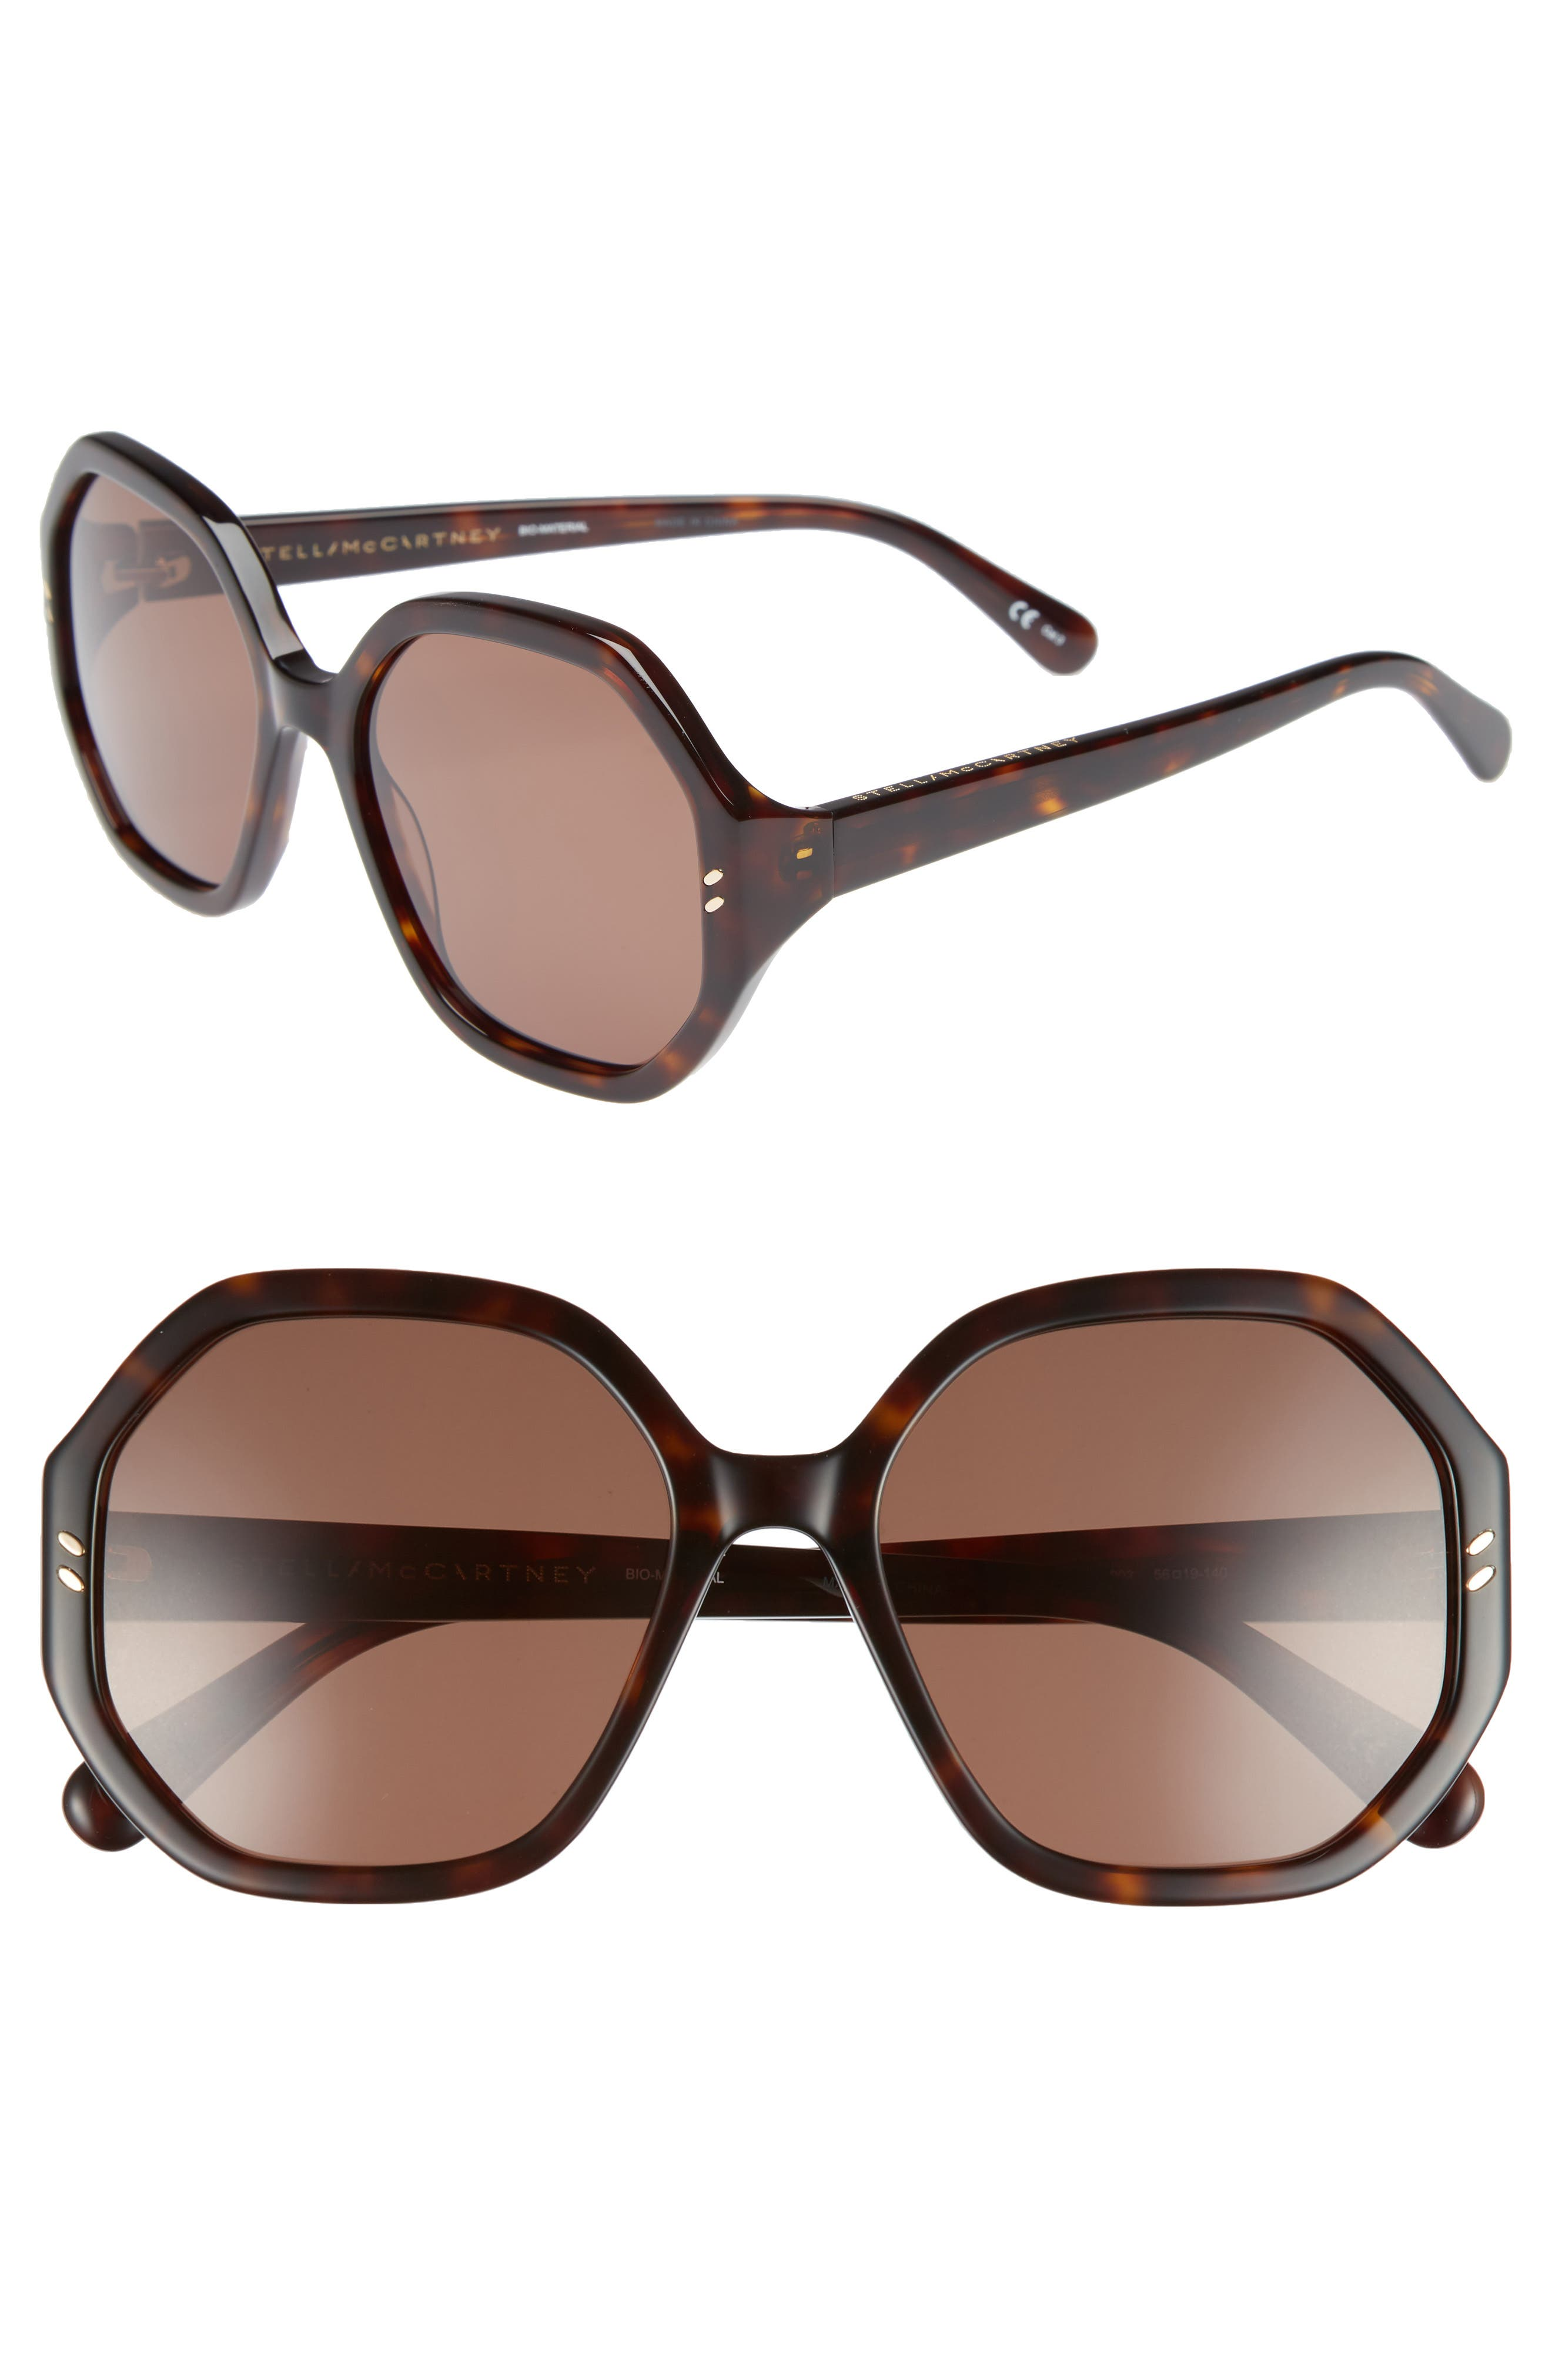 56mm Hexagonal Sunglasses,                         Main,                         color, Dark Havana